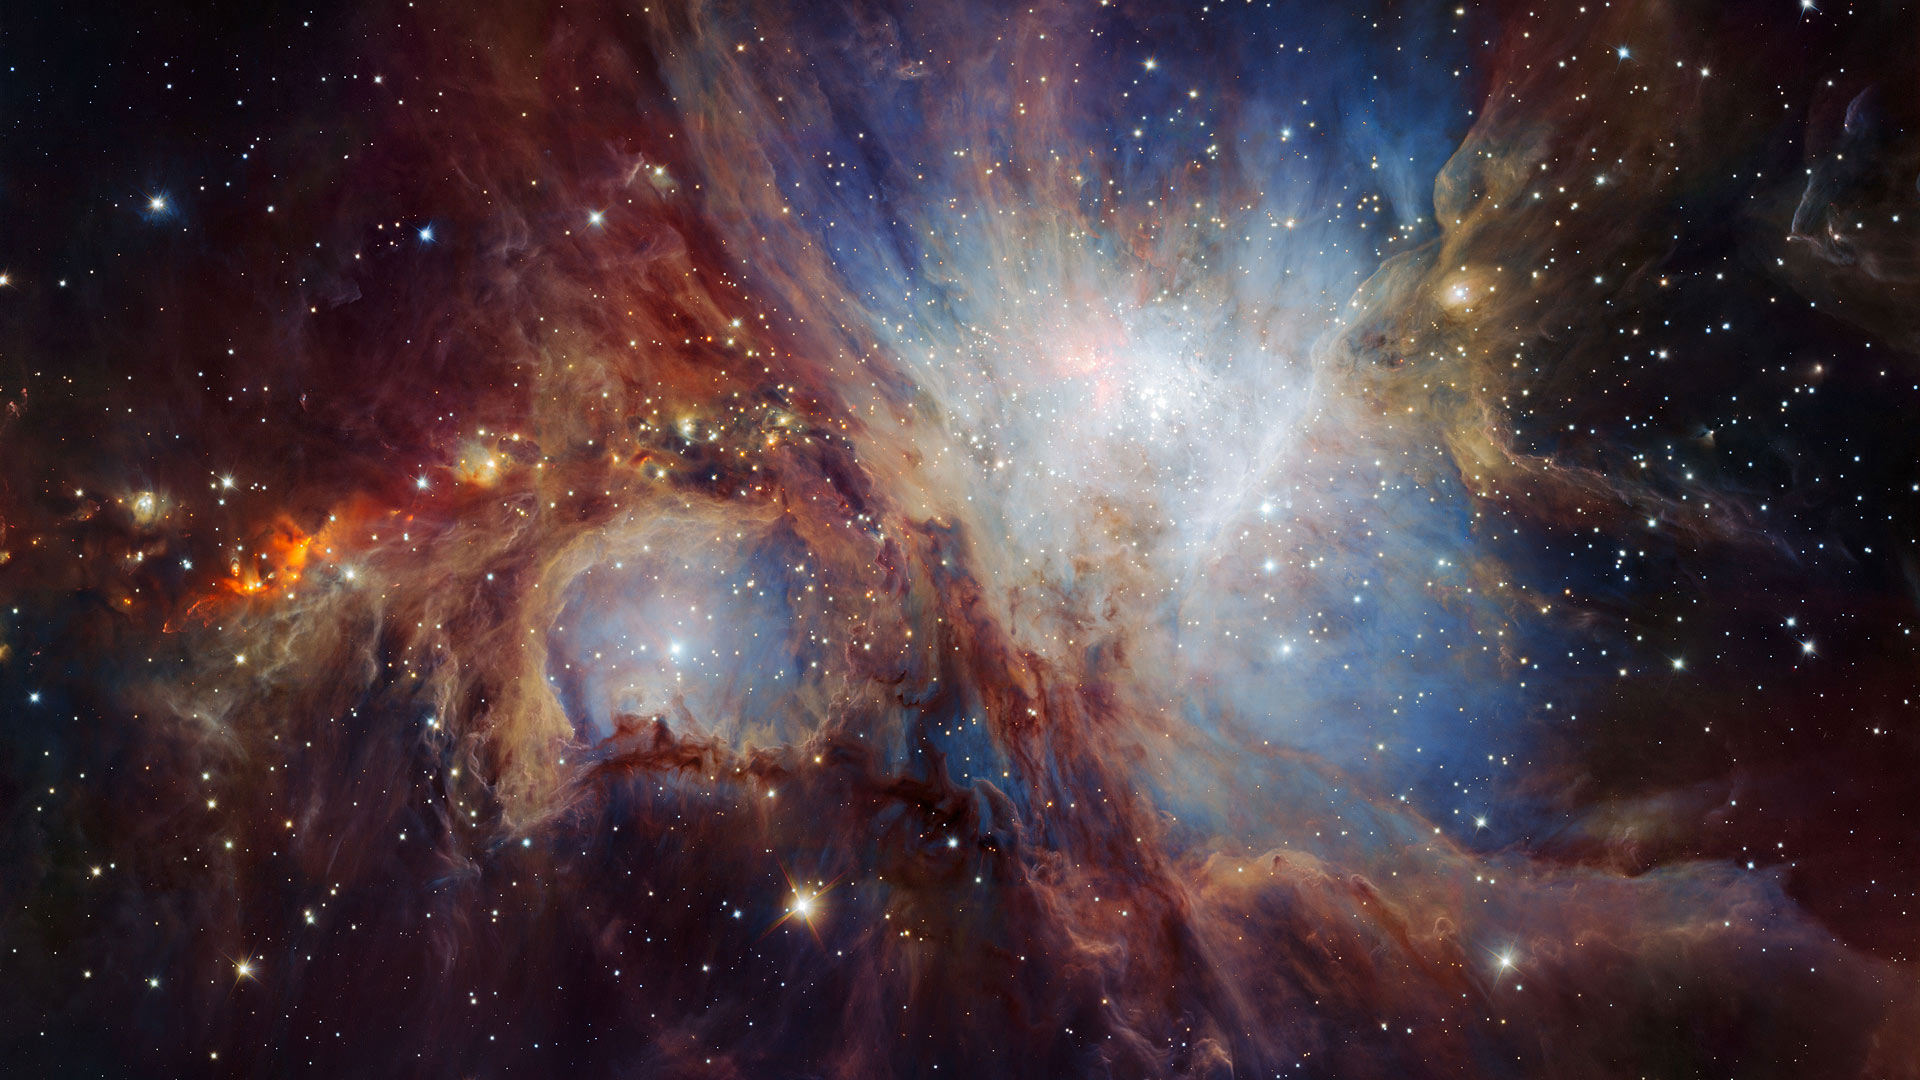 An infrared image of the Orion Nebula taken by the HAWK-I camera in Chile (© NASA)